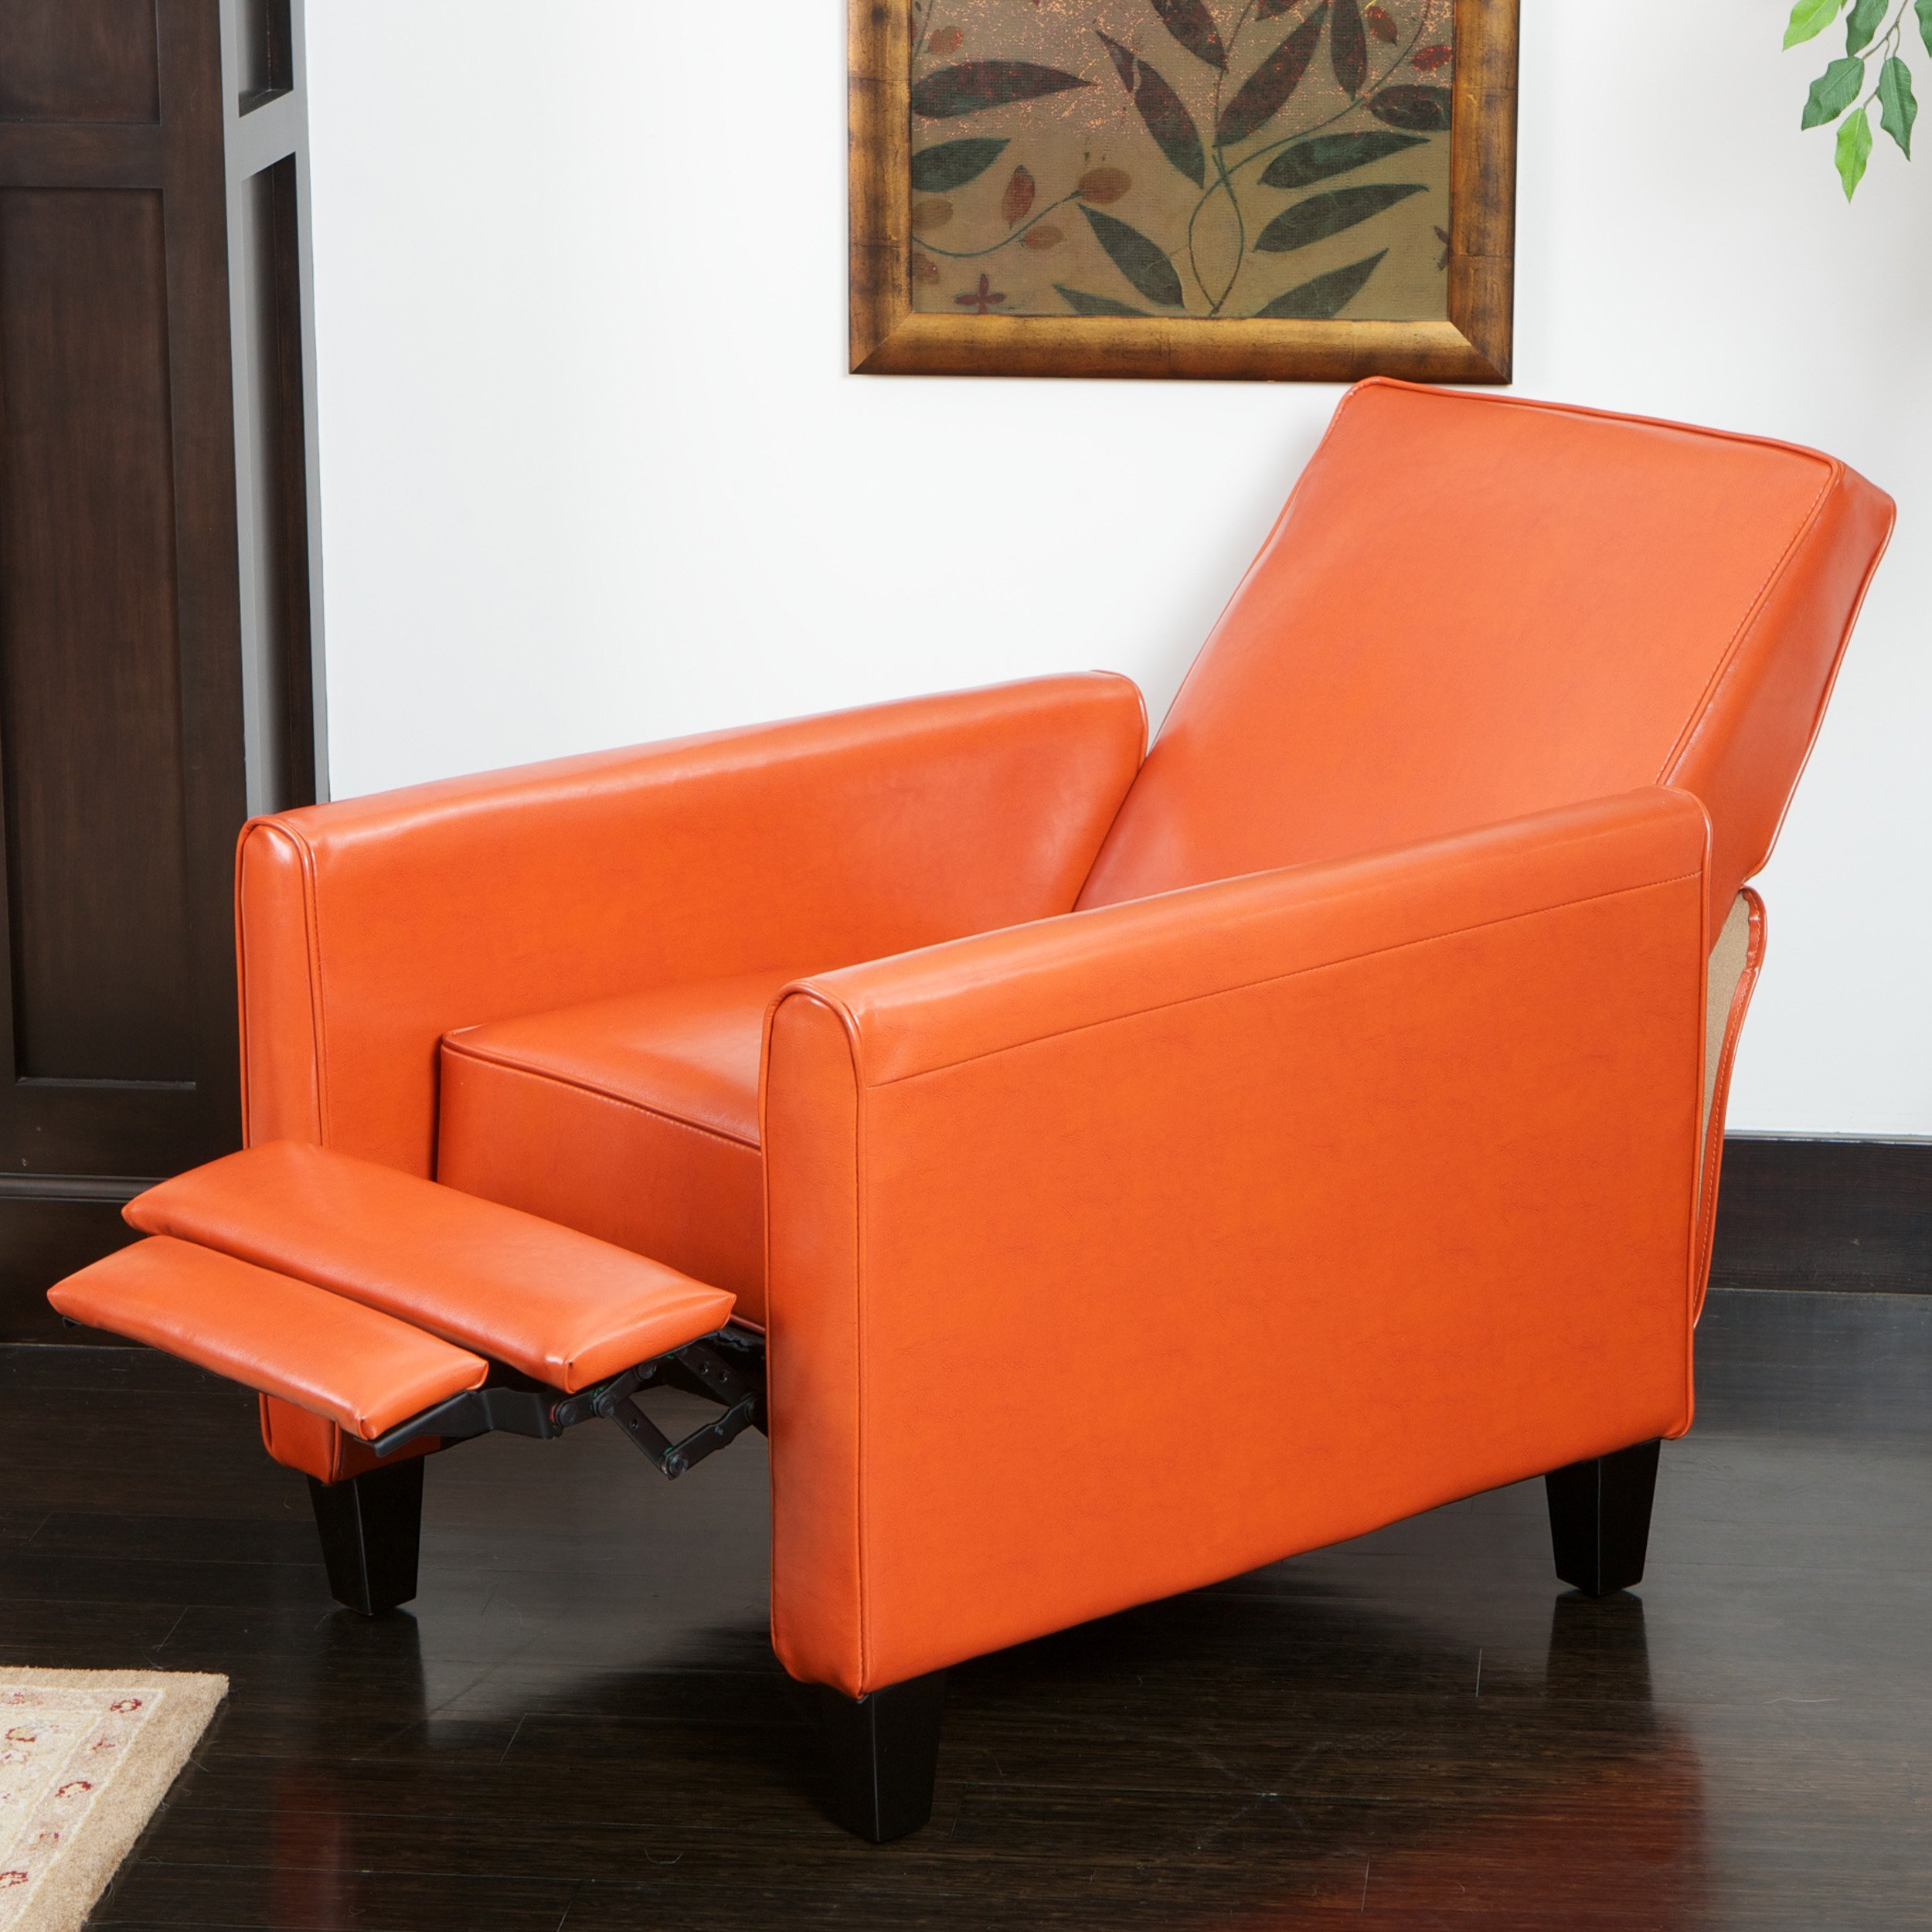 Club chair recliner - Lucas Orange Leather Recliner Club Chair